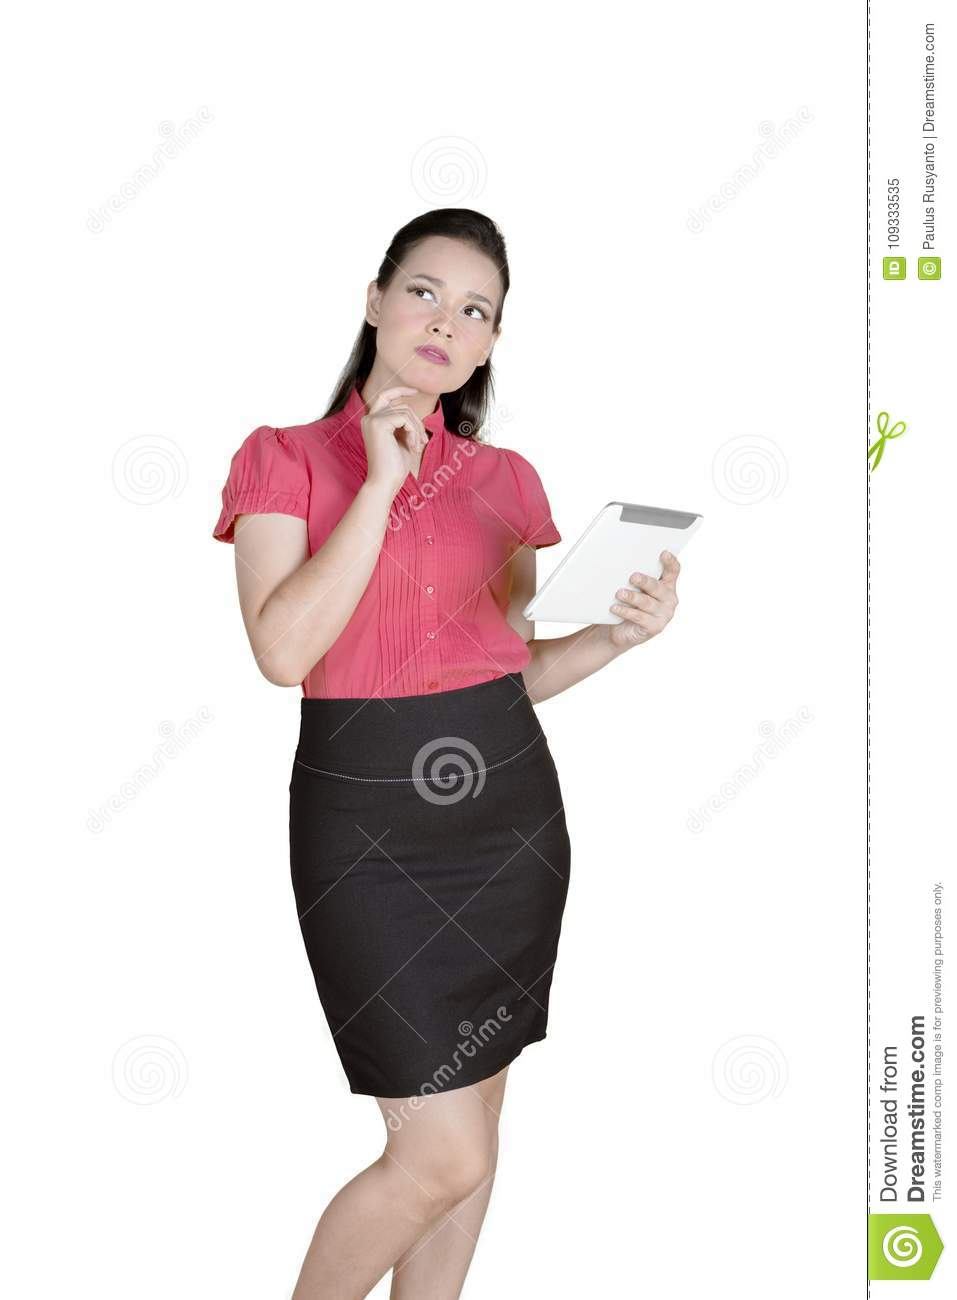 Pensive businesswoman working with a tablet on studio